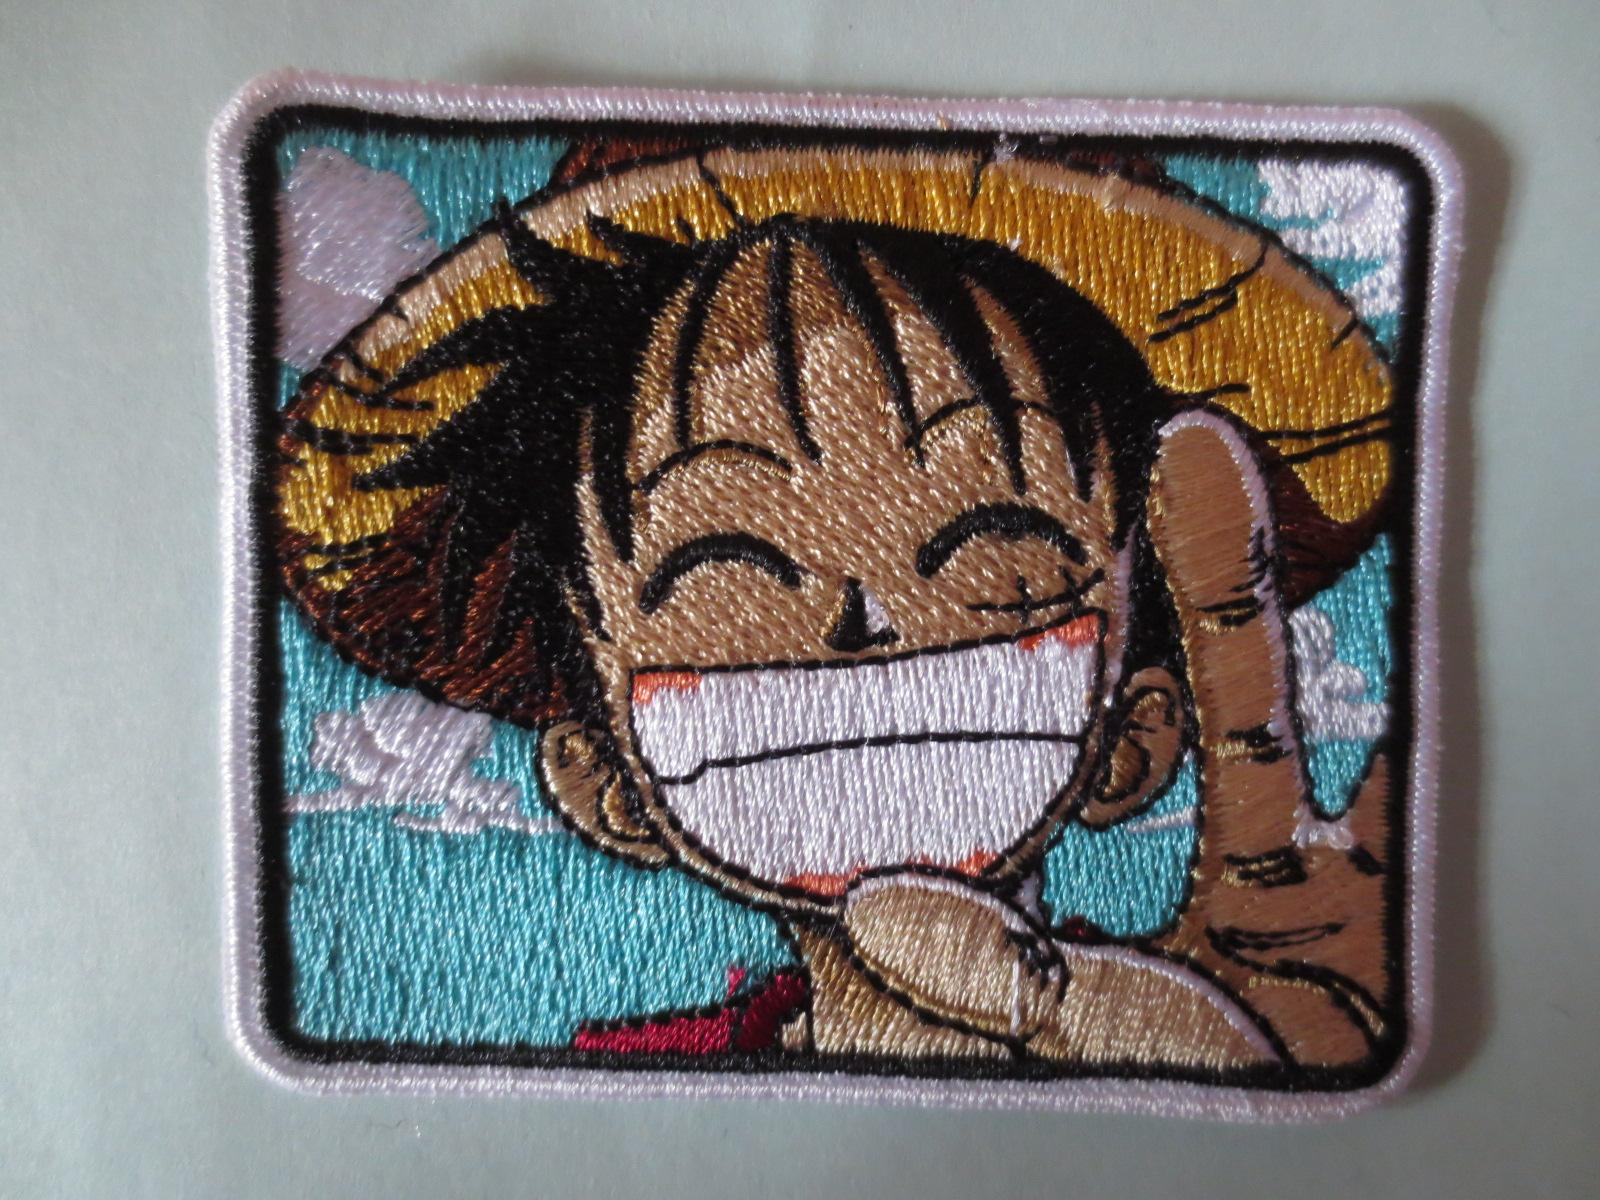 ONE PIECE embridory twill Patches for Jacket Motorcycle Biker Back Motorcycle